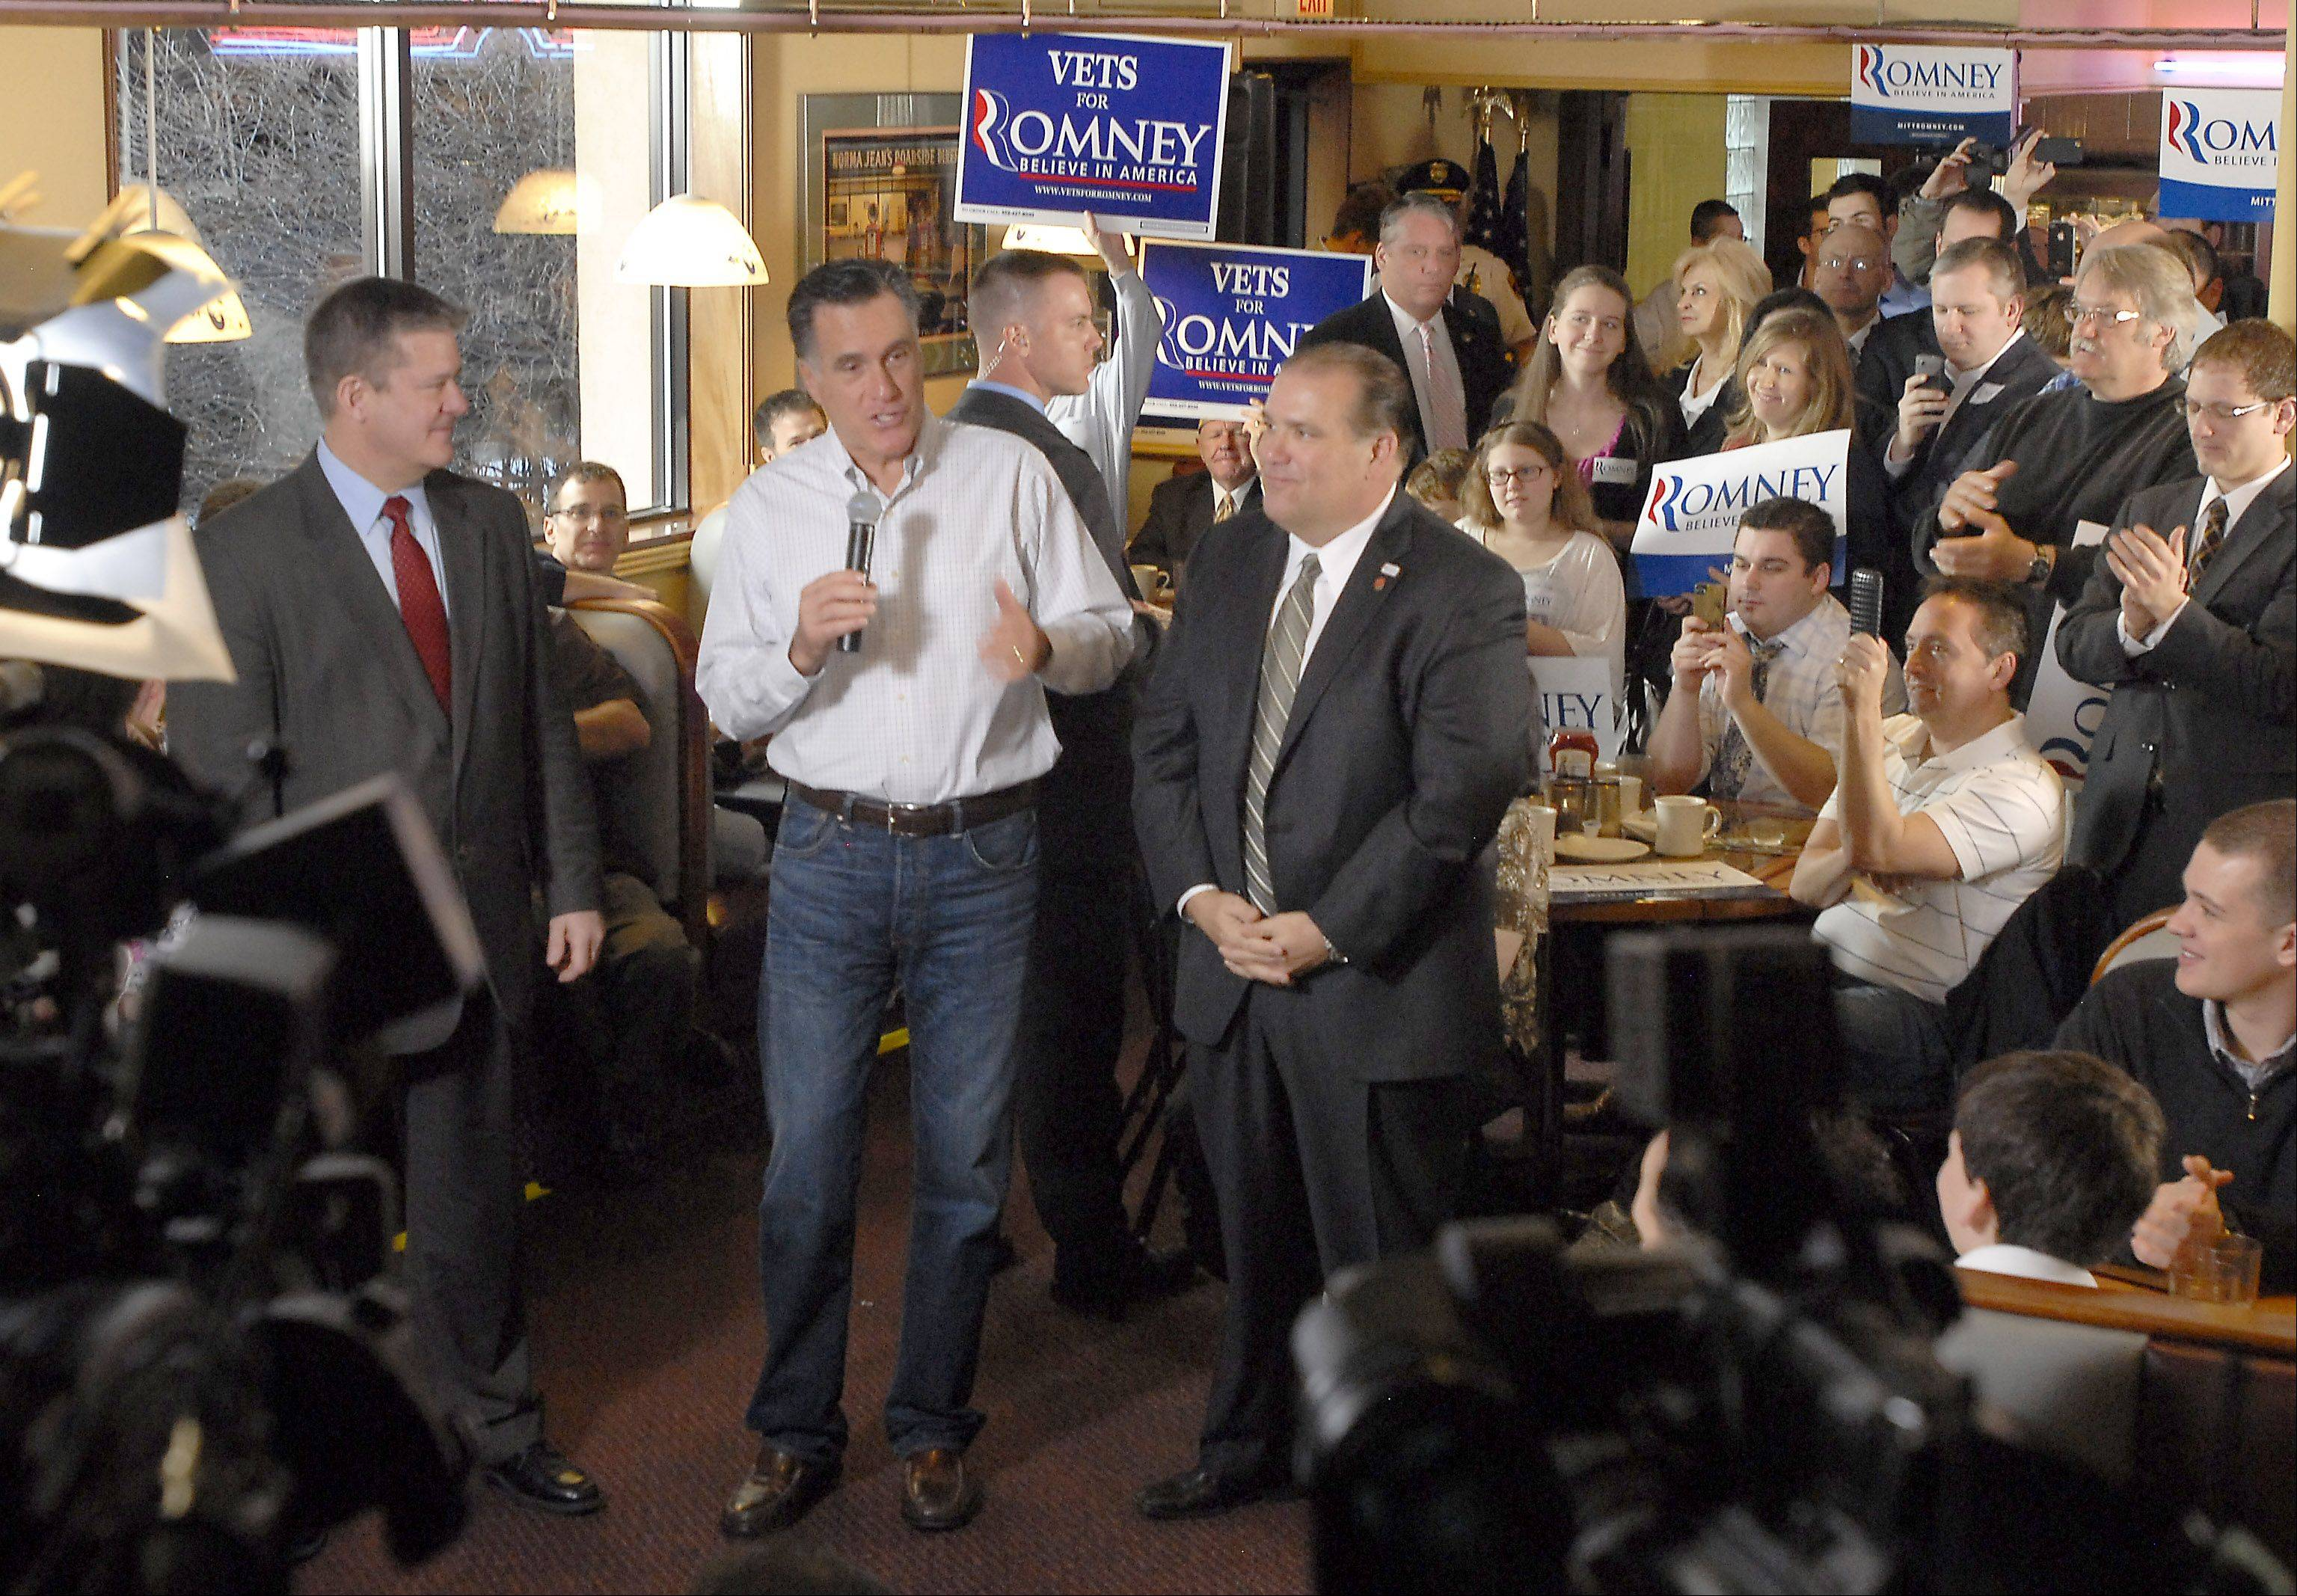 Republican presidential candidate Mitt Romney, center, is joined by Illinois State Treasurer Dan Rutherford, left, and Rosemont Mayor Bradley Stephens early Friday morning at a restaurant in Rosemont.